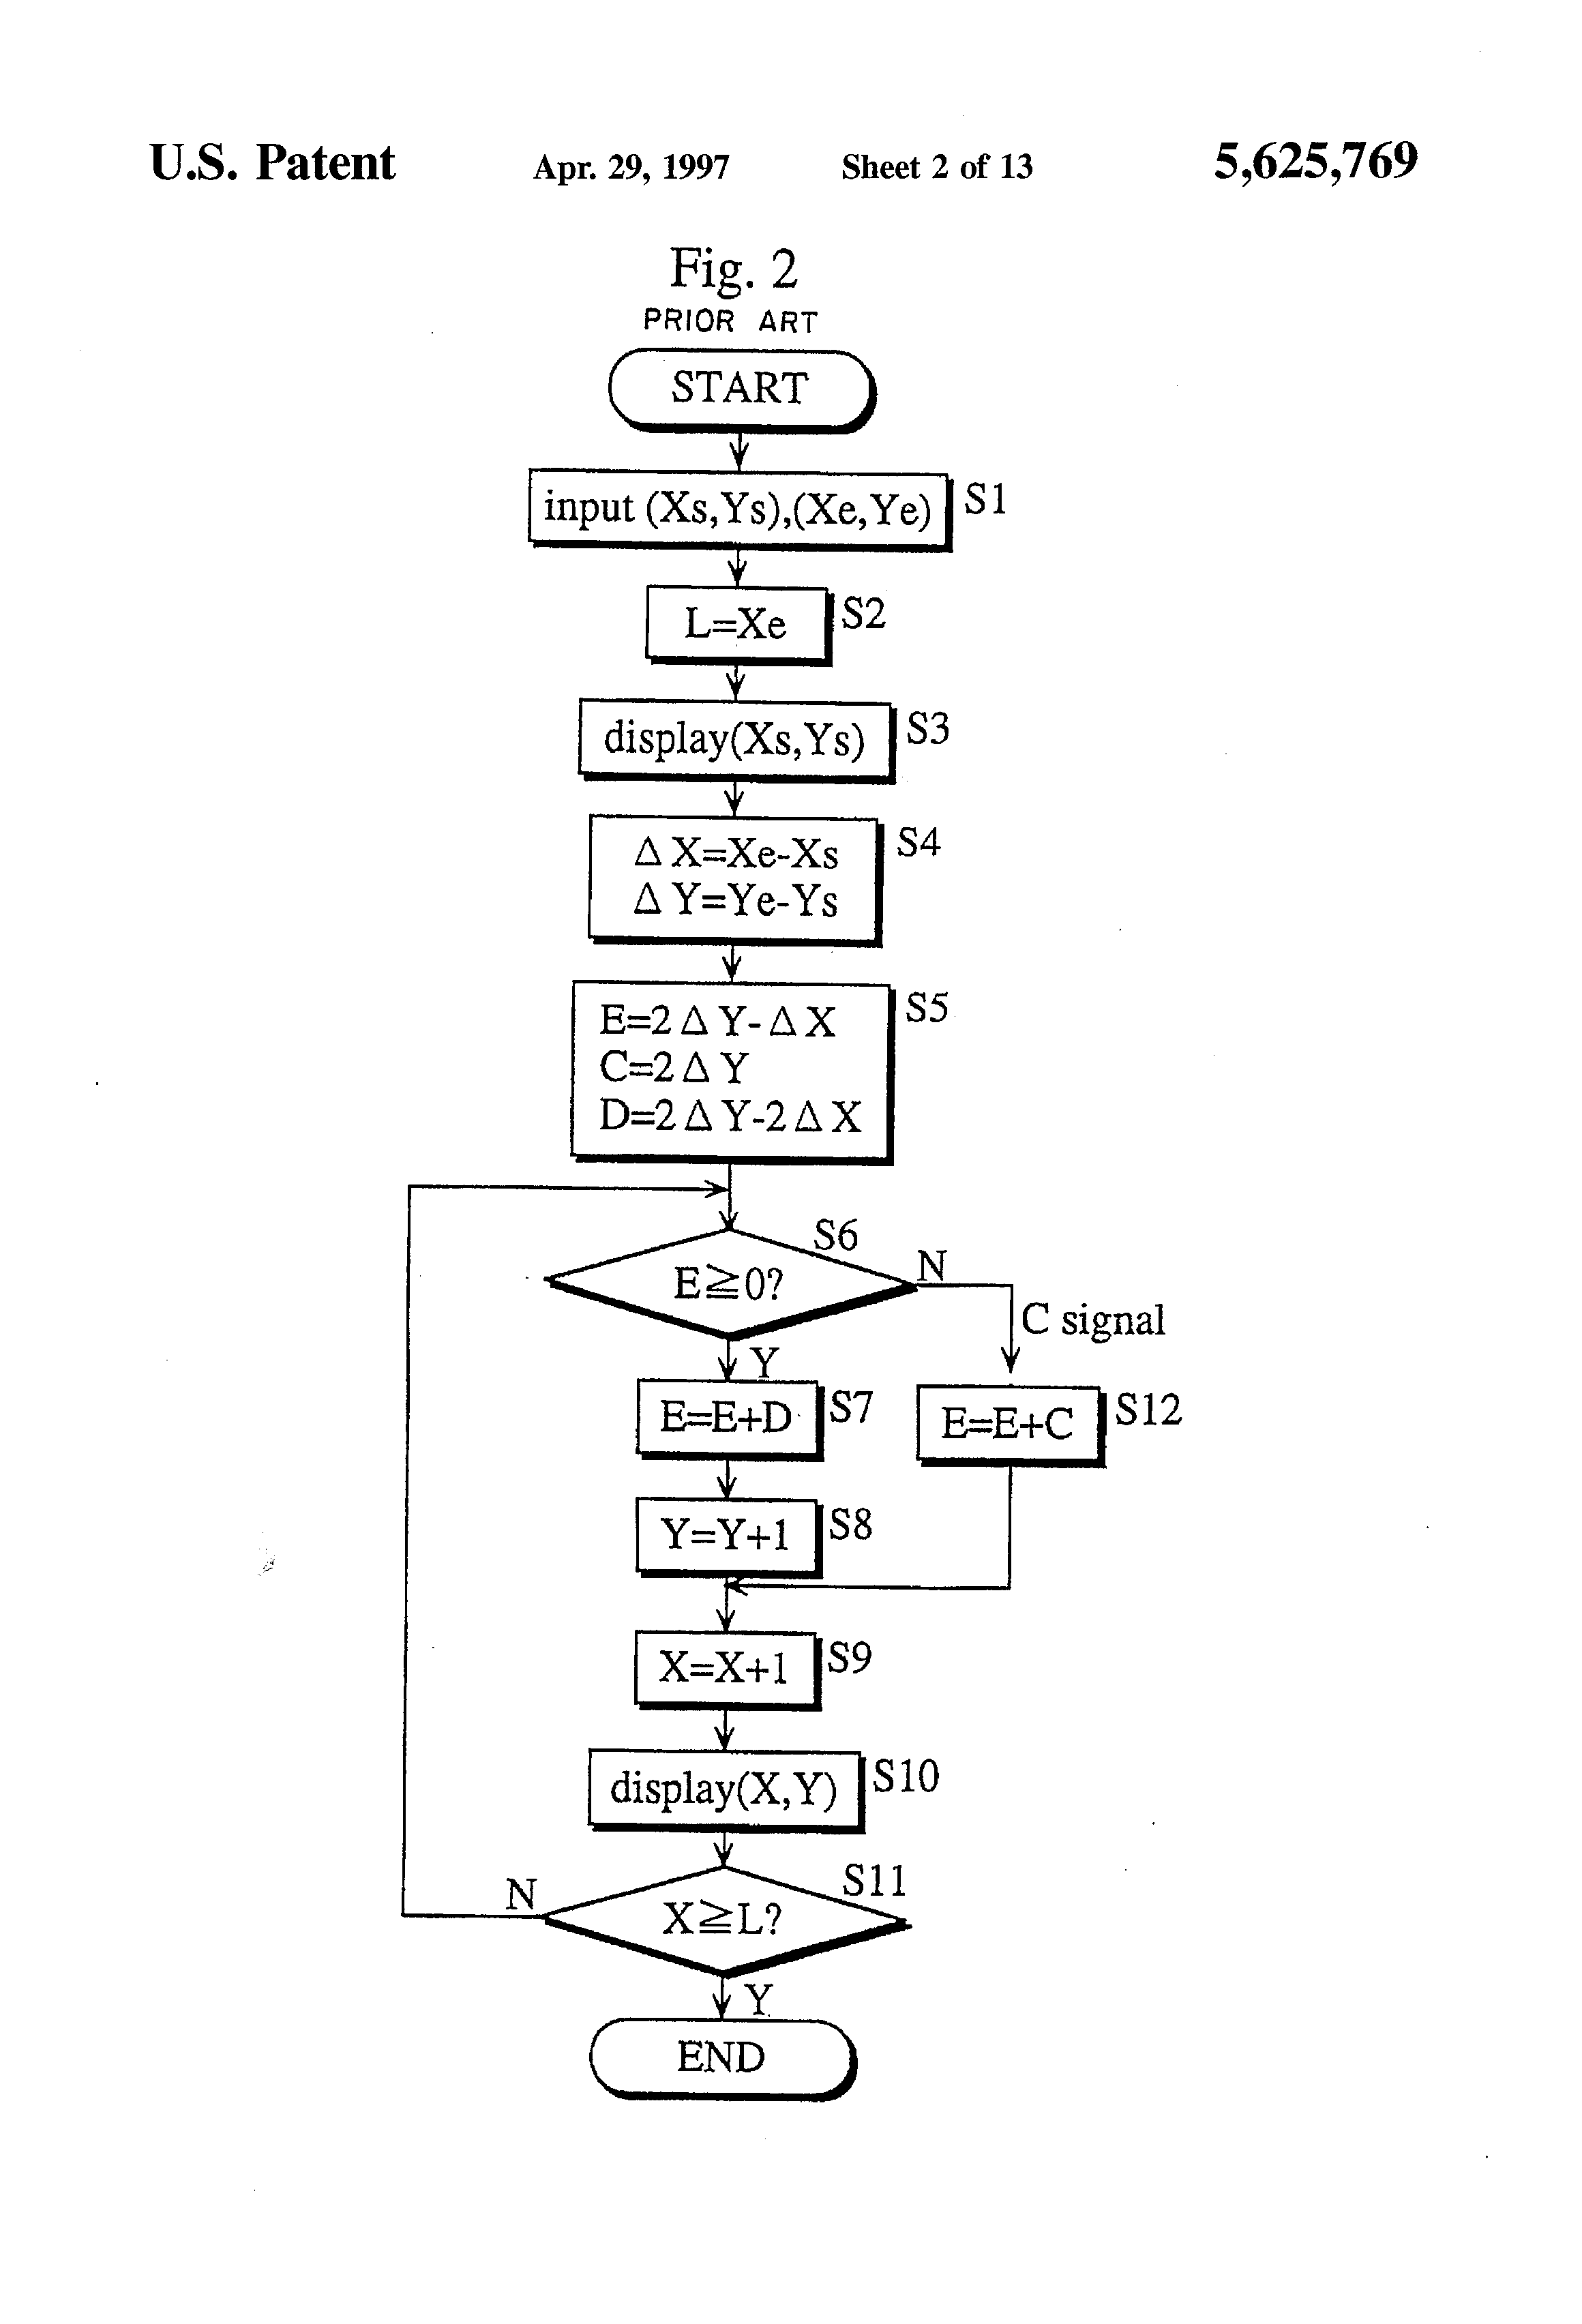 Bresenham Line Drawing Algorithm Numerical : Patent us apparatus for and method of generating